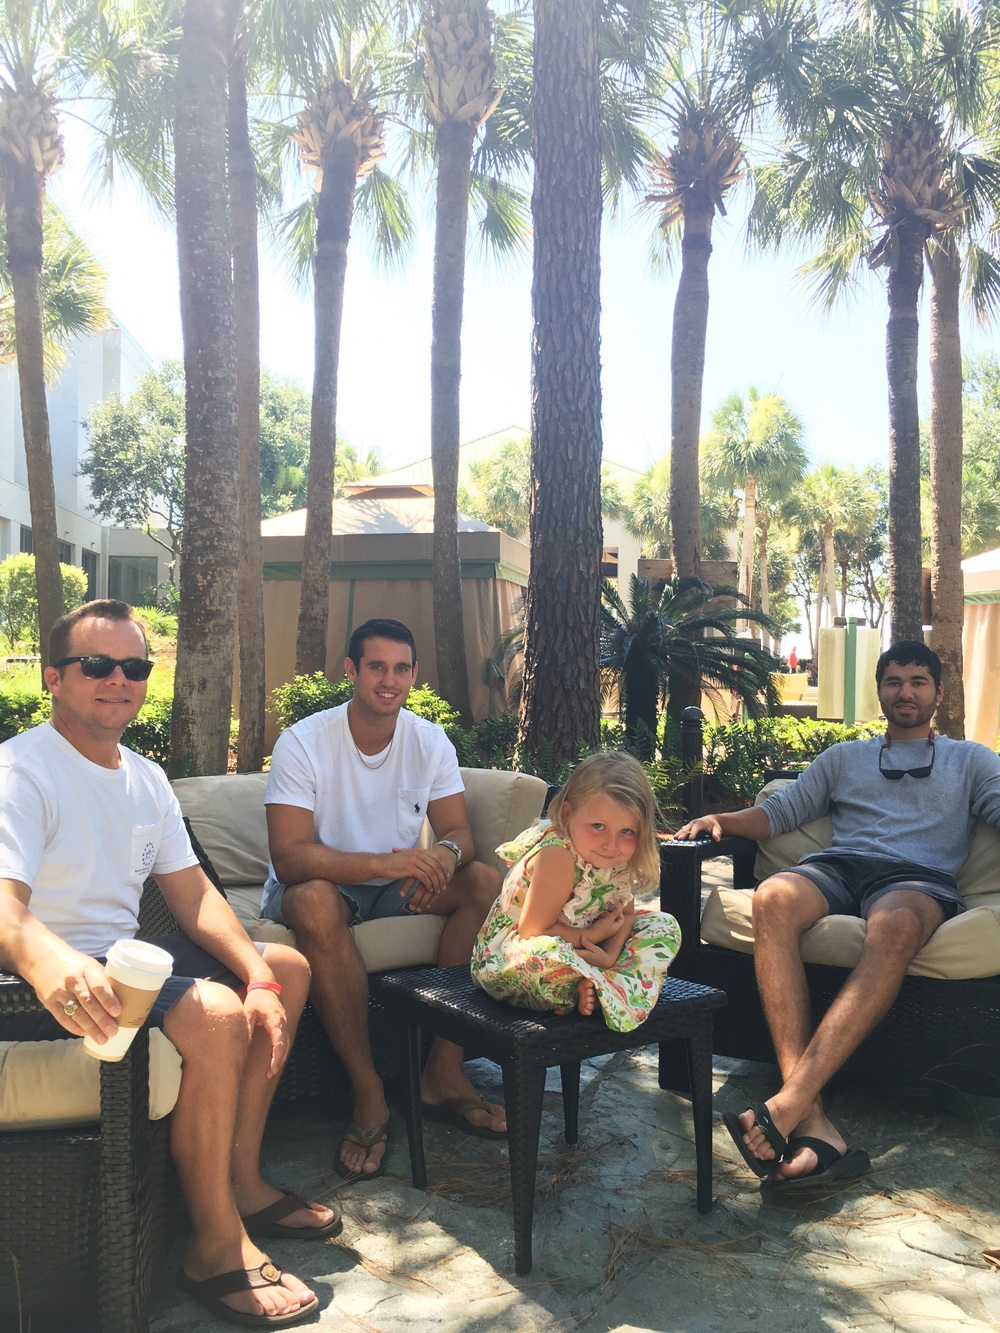 Harp loved spending vacay with her Uncle Sam and friends! We love our framily!  The guys loved hanging out by the pool bar and the private beach.